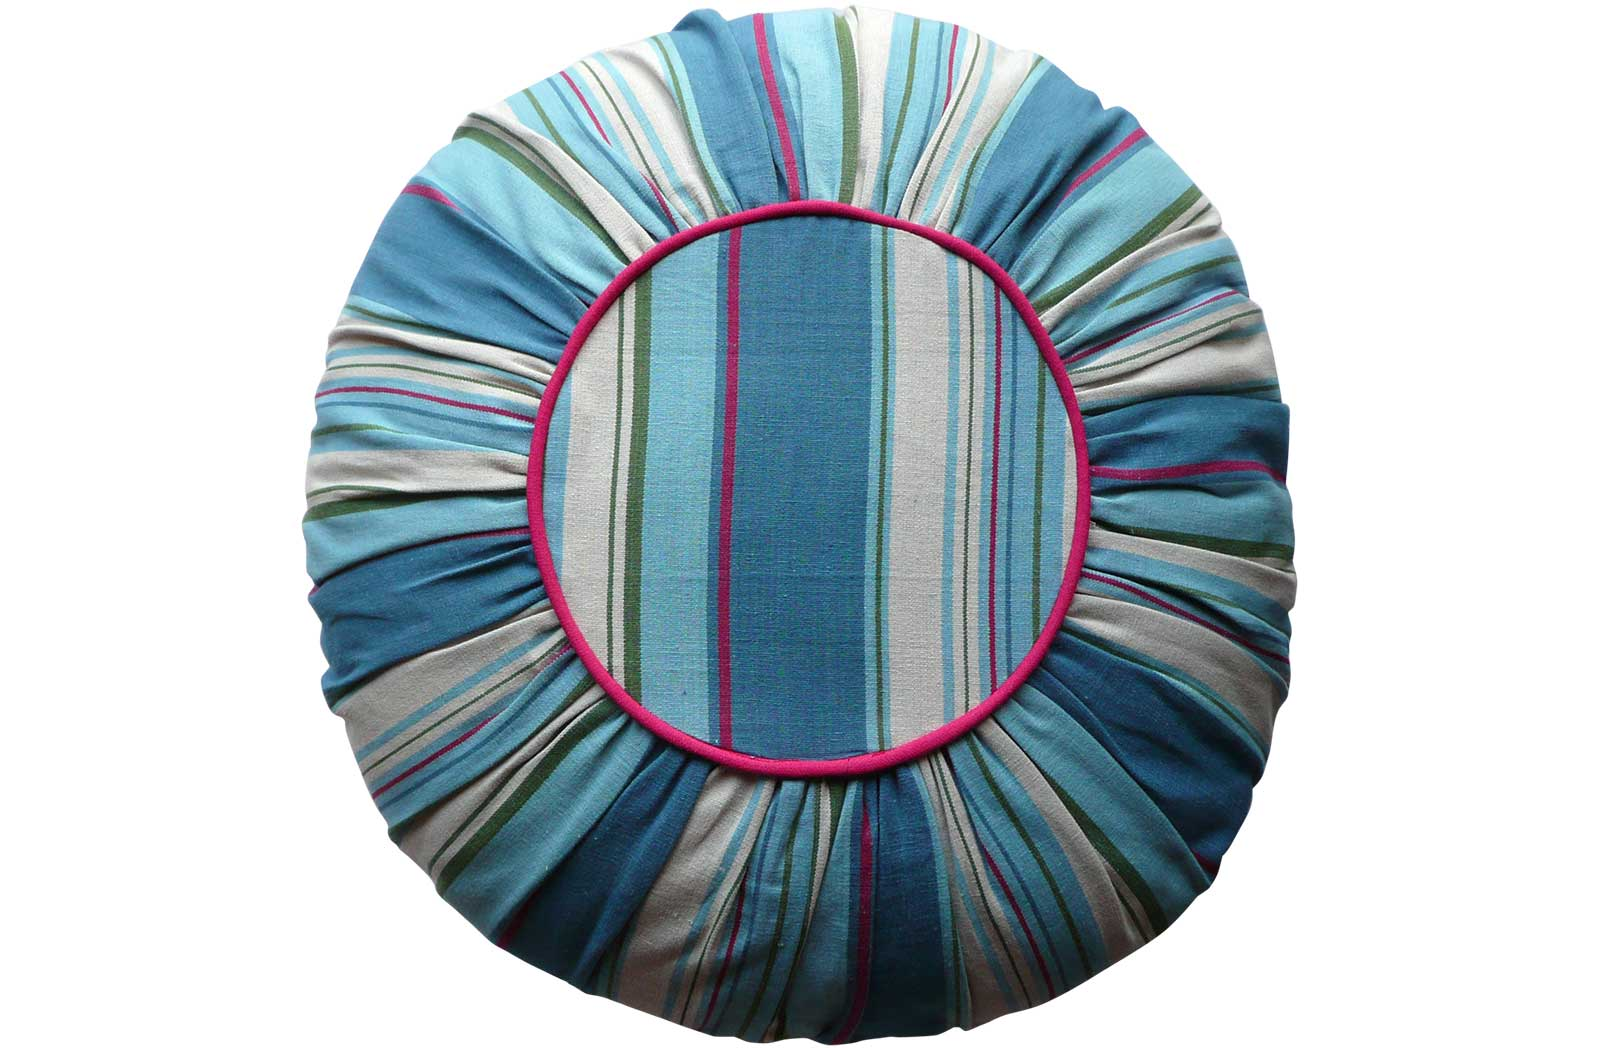 Coastal Stripe Round Cushions with petrol blue, pale blue, cream stripes